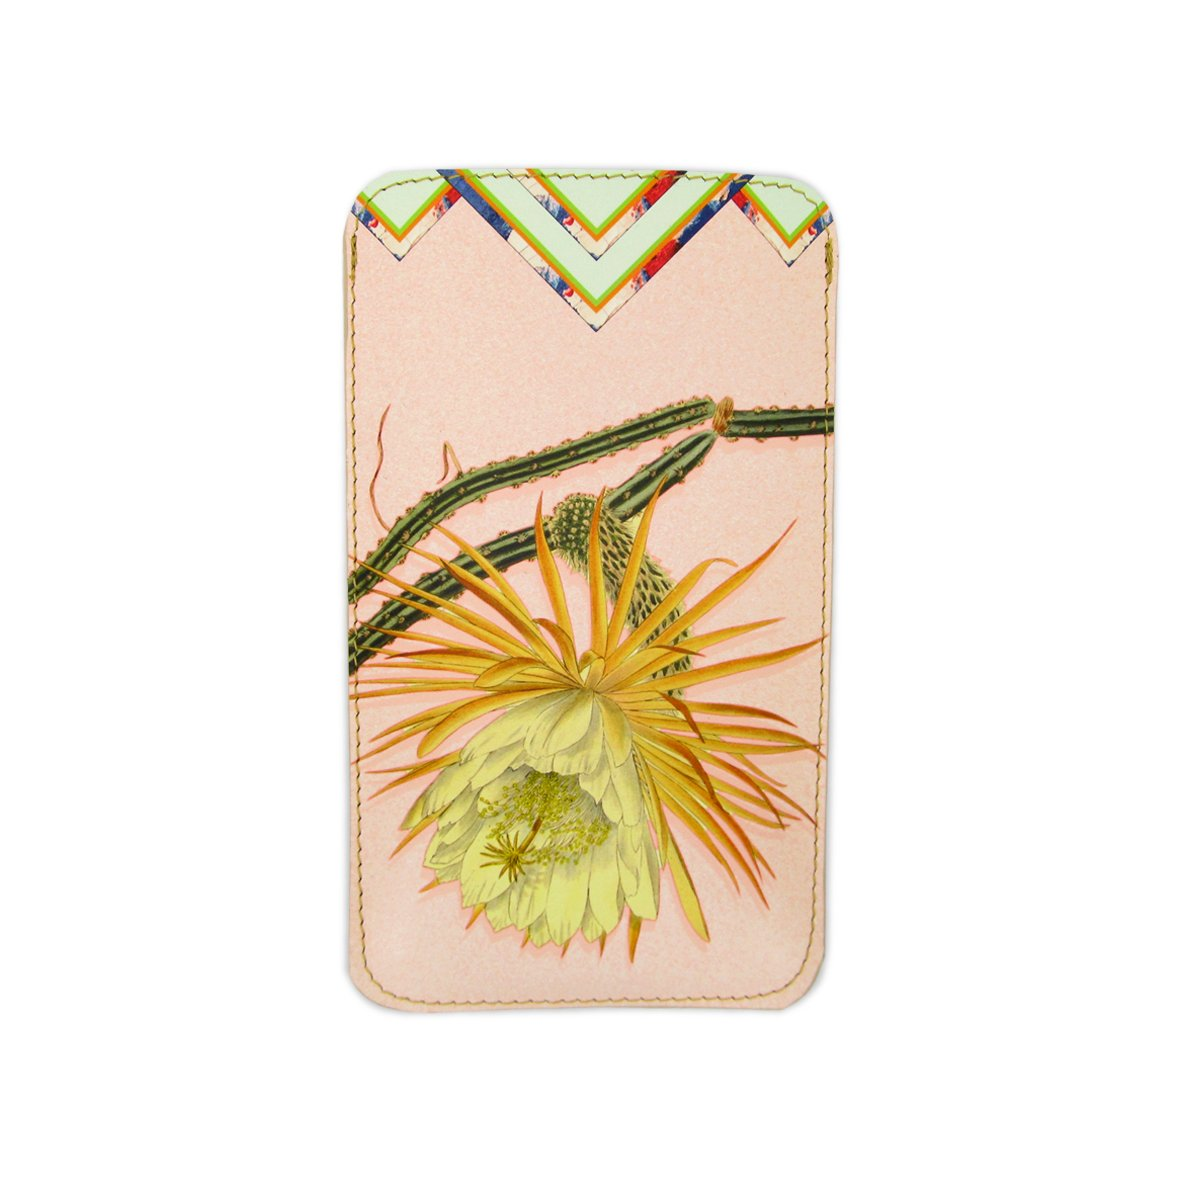 Leather Phone Case Sleeve - Cactus Flower